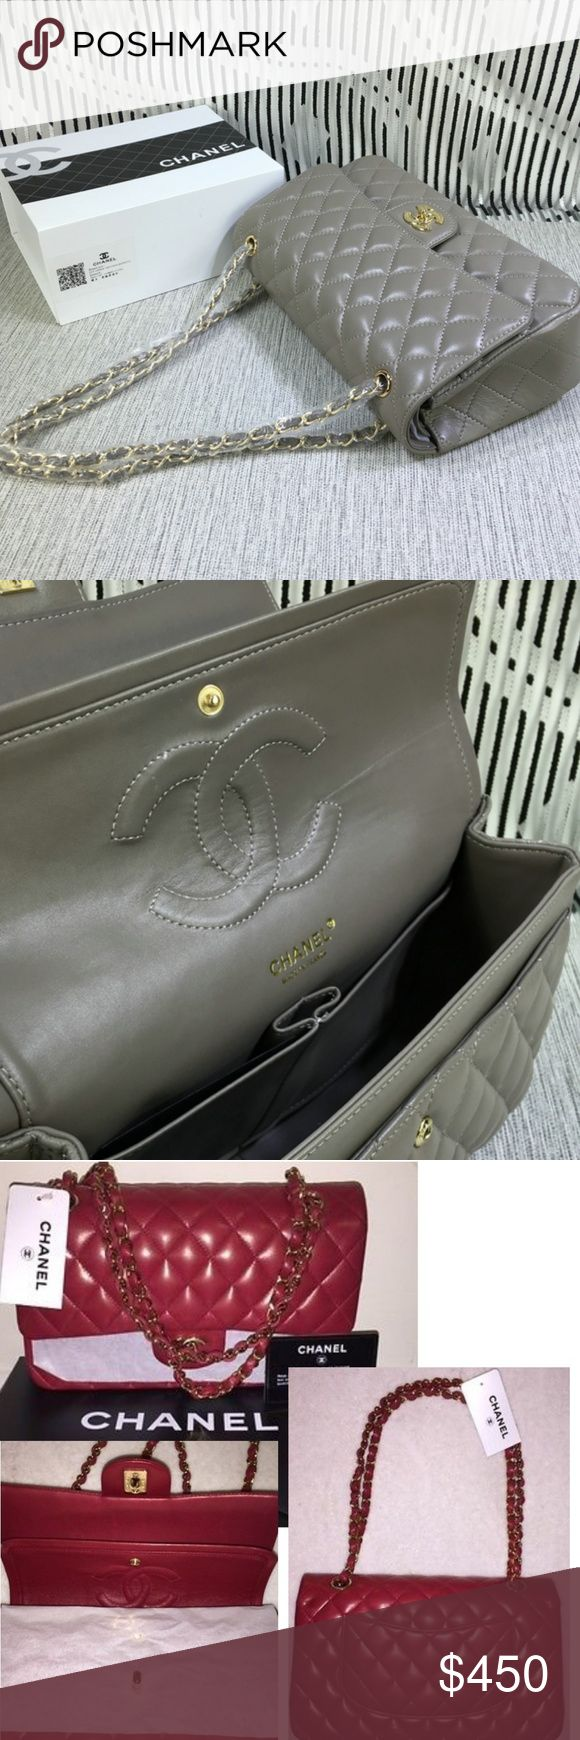 Lambskin Caviar Leather Bags I have a variety of colors available with both silver and gold hardware P. Ay P. Al payment $300 These are obviously dupes ...don't ask silly questions,not everyone can afford real ones, Thank You  I sell through a P. Ay P. Al business account so you get shipping and tracking CHANEL Bags